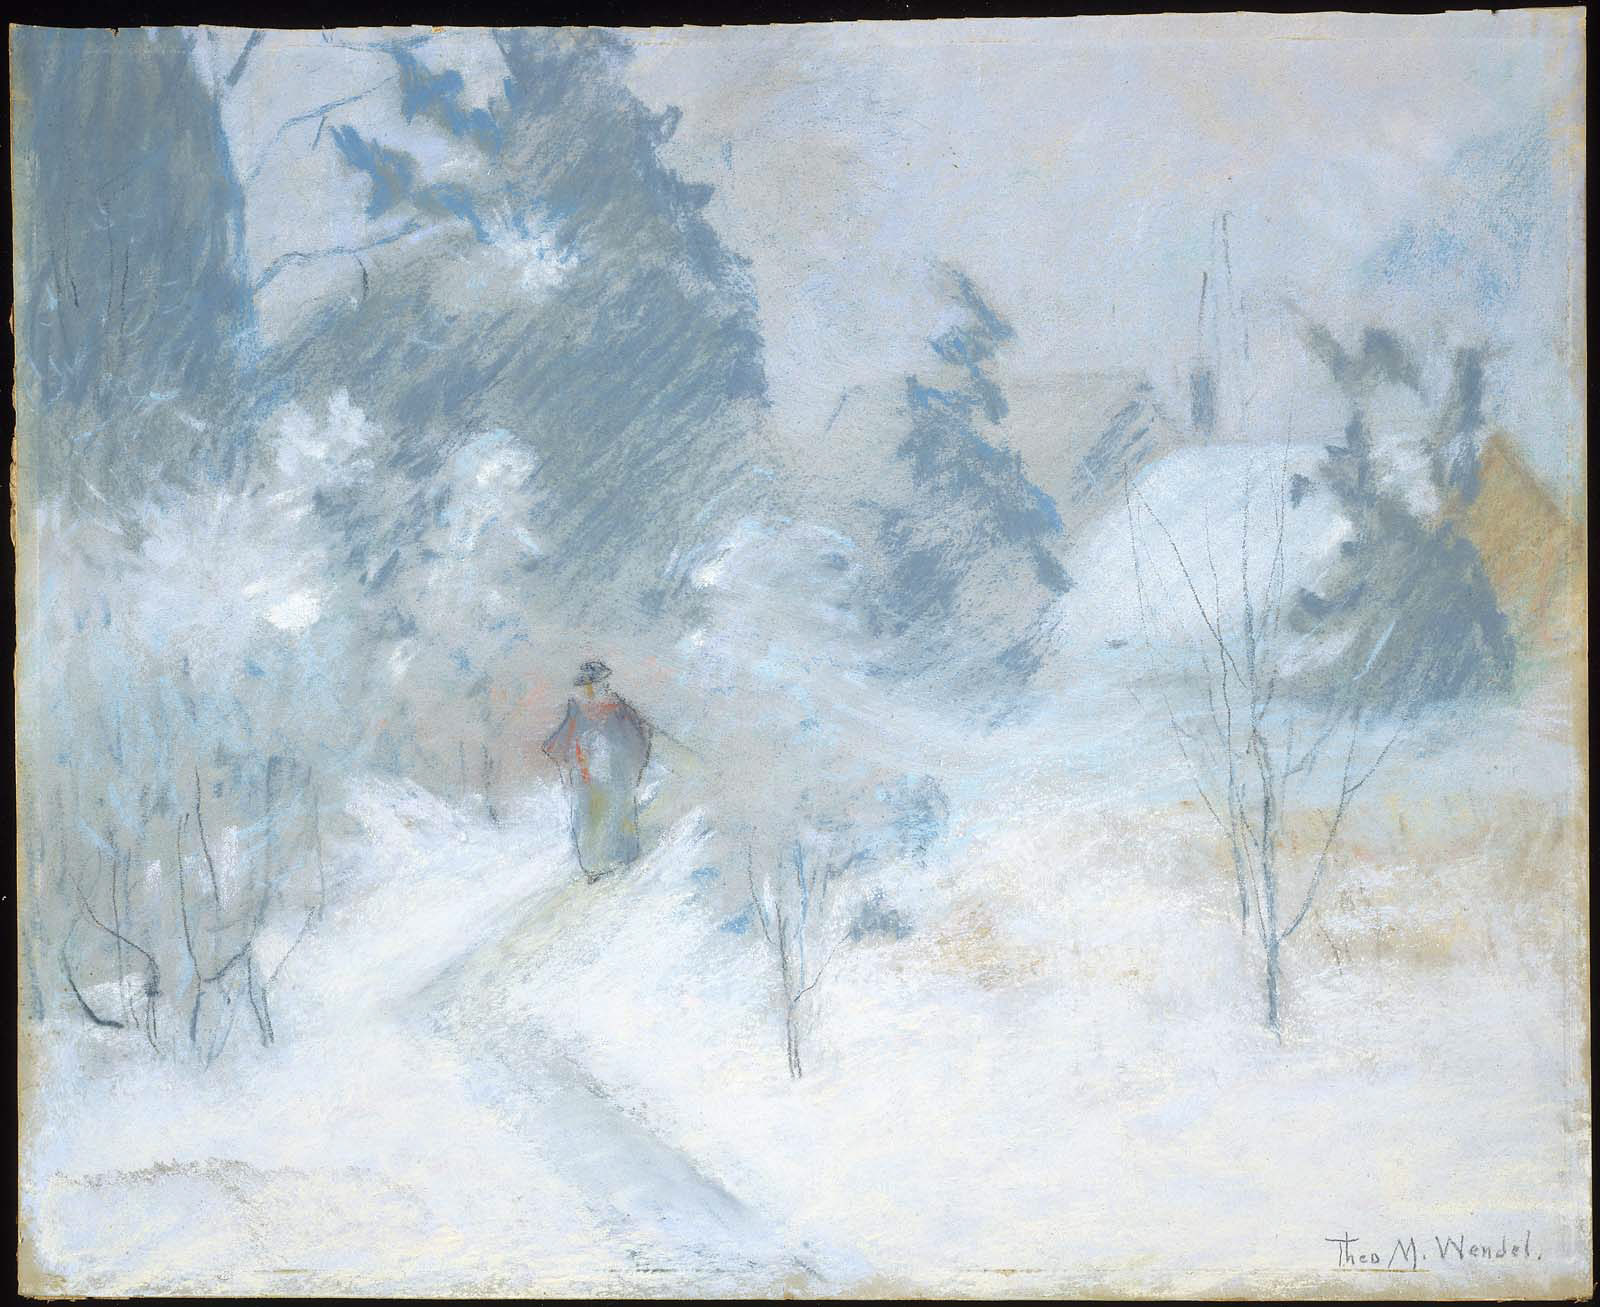 MFA Images: American Impressionism & Related Works | Museum of Fine ...